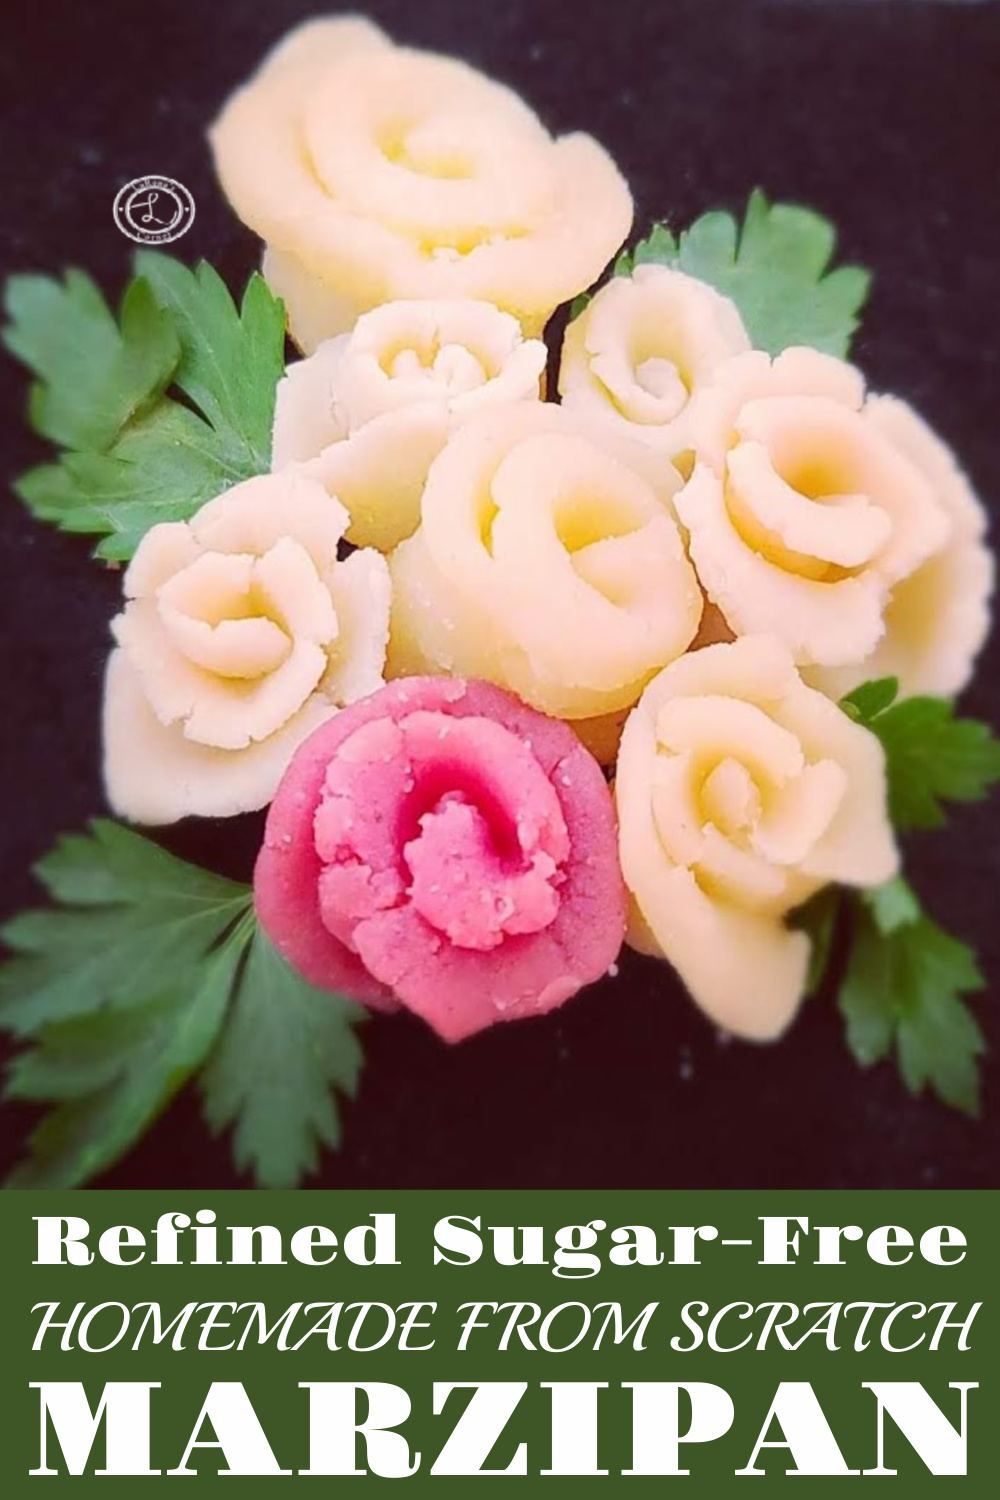 A Bouquet of Marzipan Roses one is pinkish red with parsley leaves.